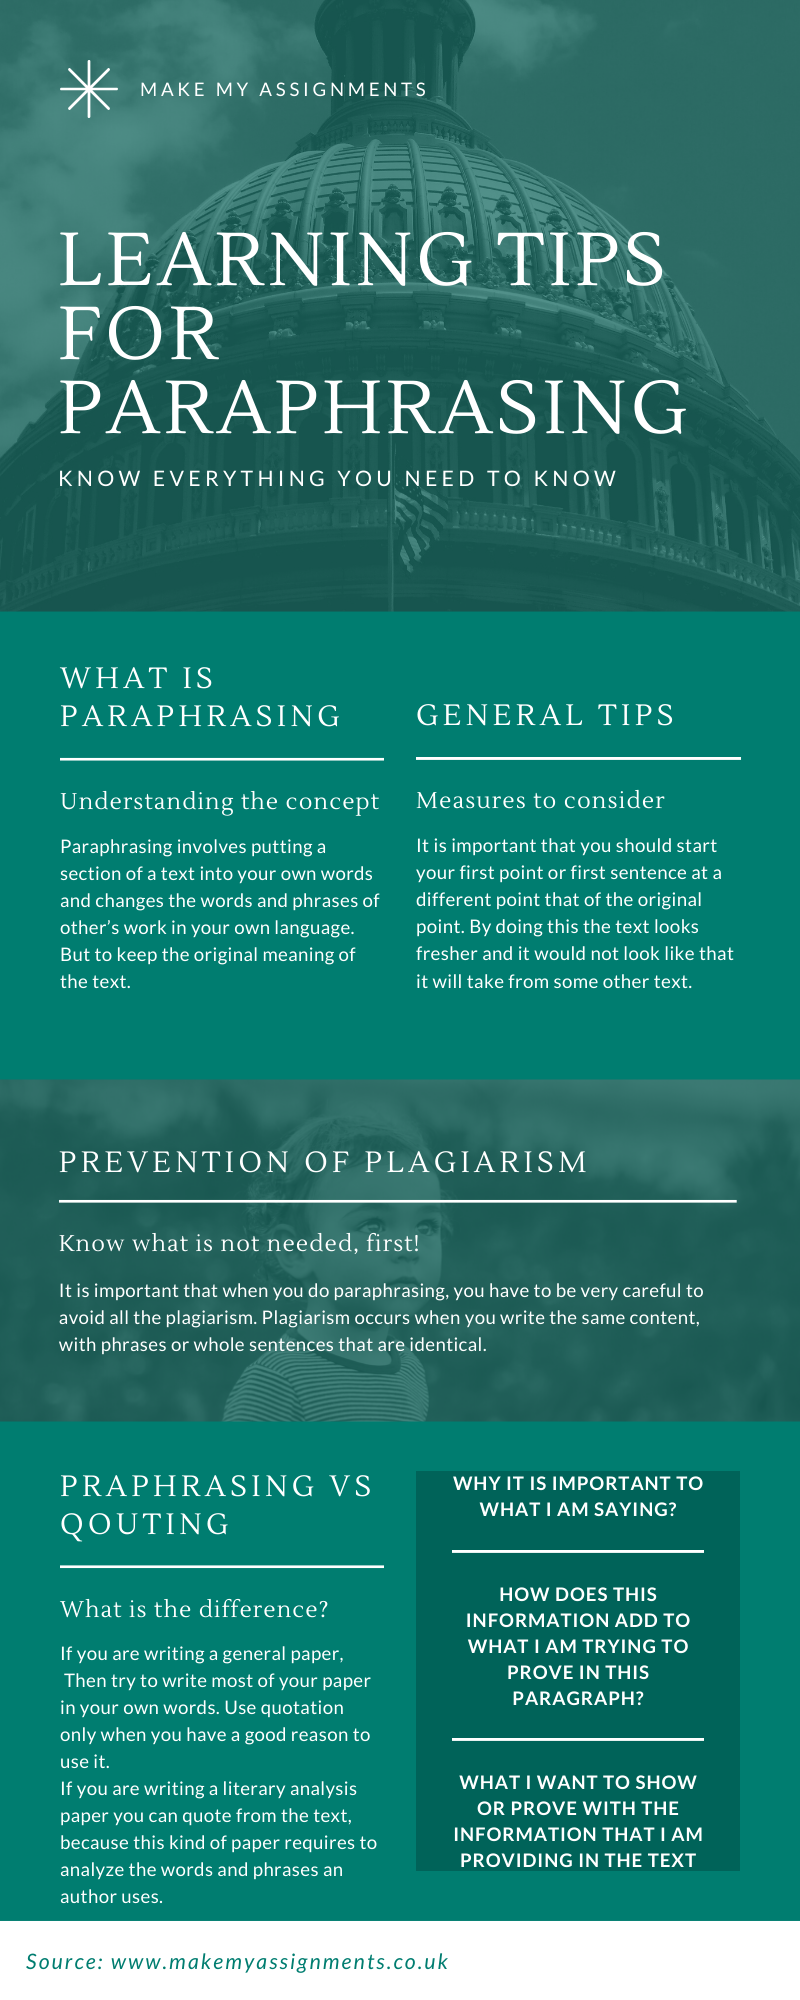 Learning tips to paraphrasing